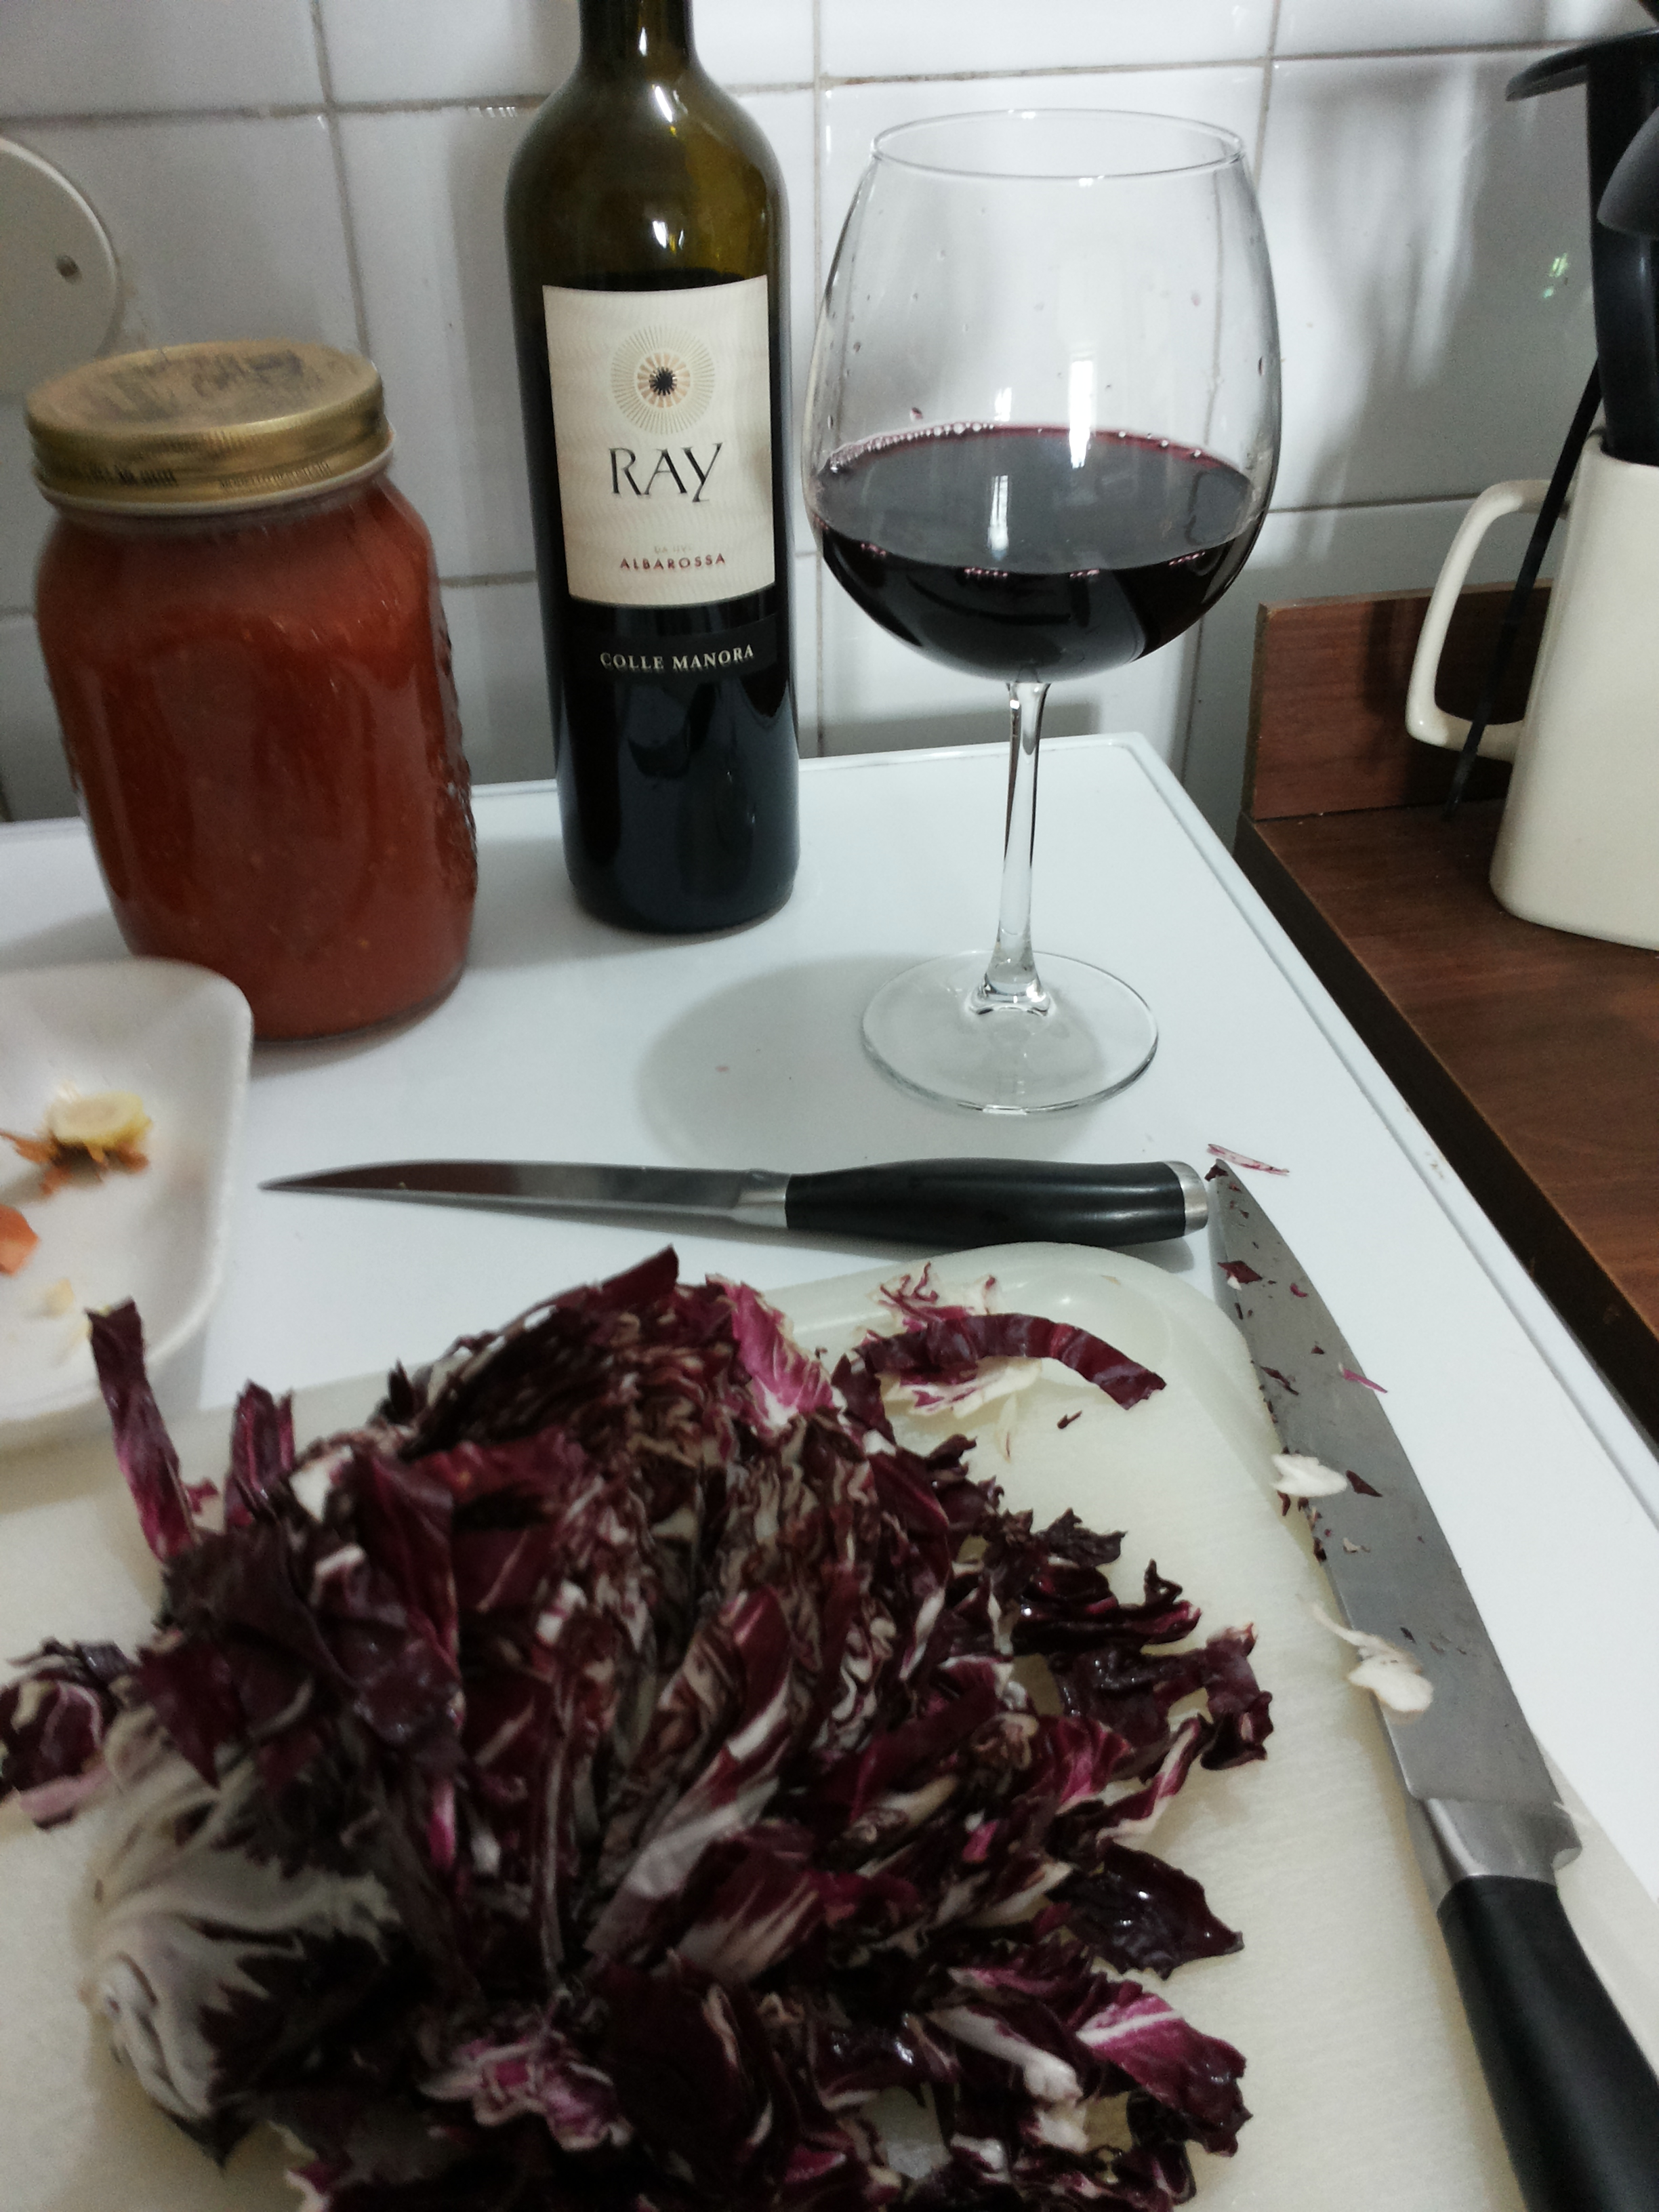 Red stuff chopped and wine within reach